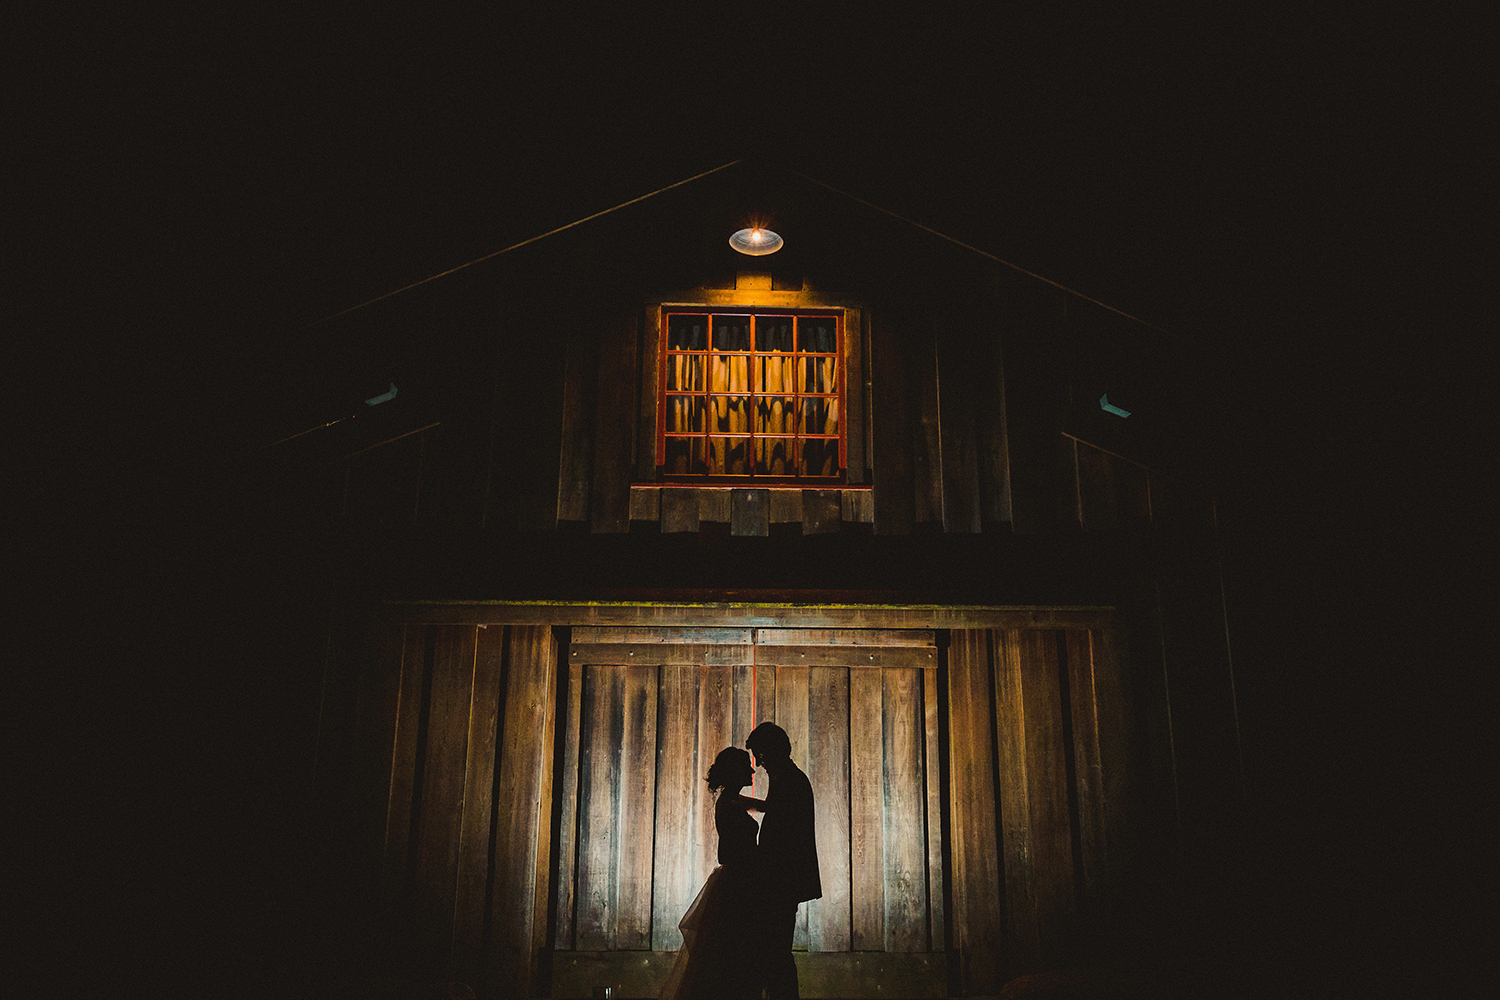 Redwood-Ranch-Three-Rivers-Wedding-Venue-S+O-73.jpg